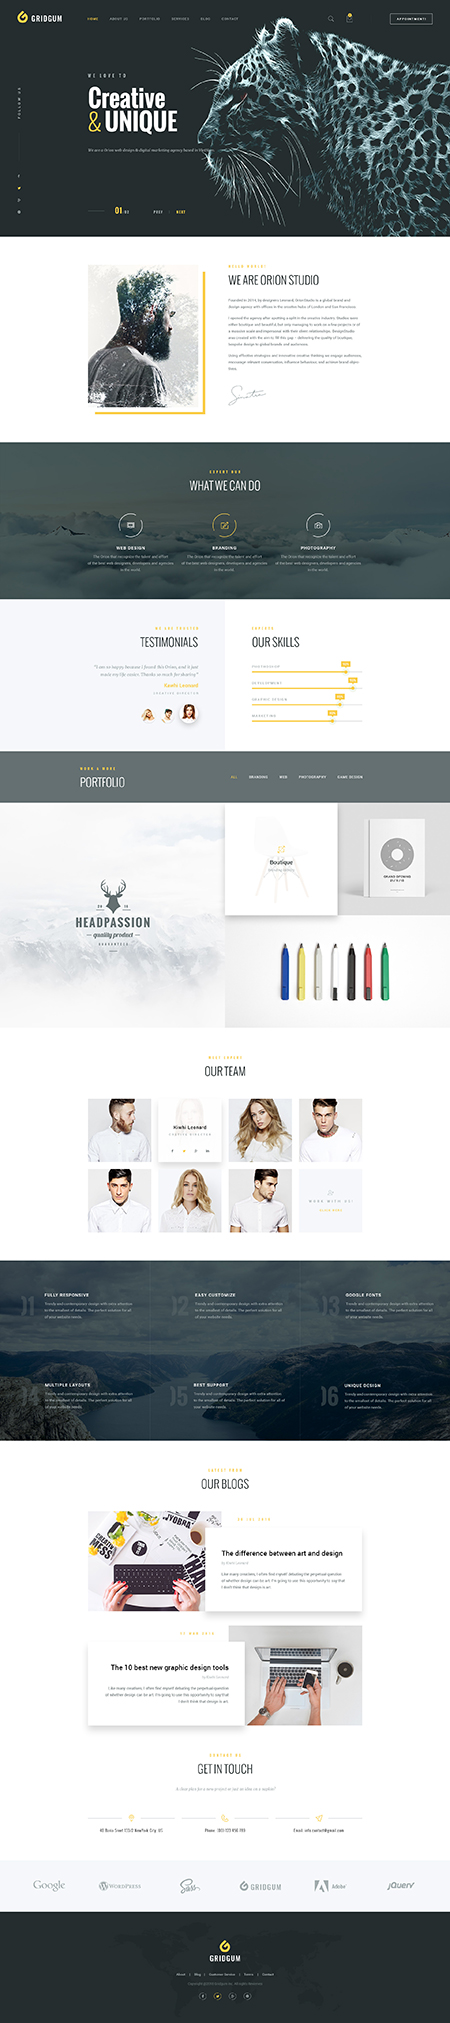 Creative Agency Bootstrap template ID: 300111932